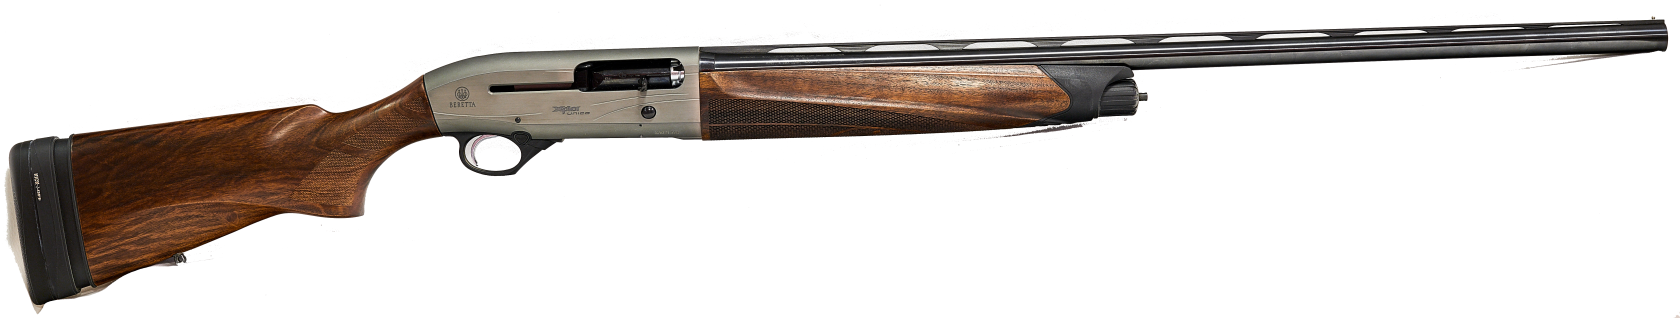 Beretta Xplor Unico копия.png